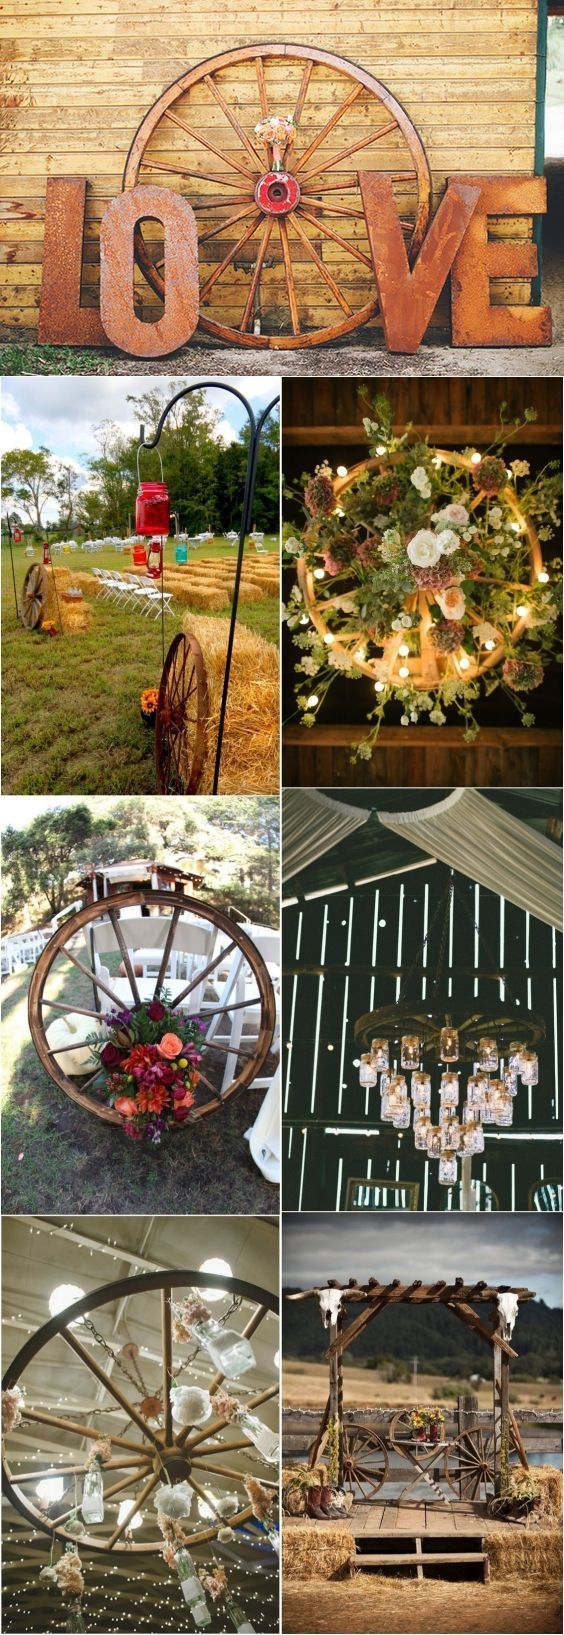 2019 Top 15 Must See Rustic Wedding Ideas—Rustic Country Wedding Ideas with Wa…